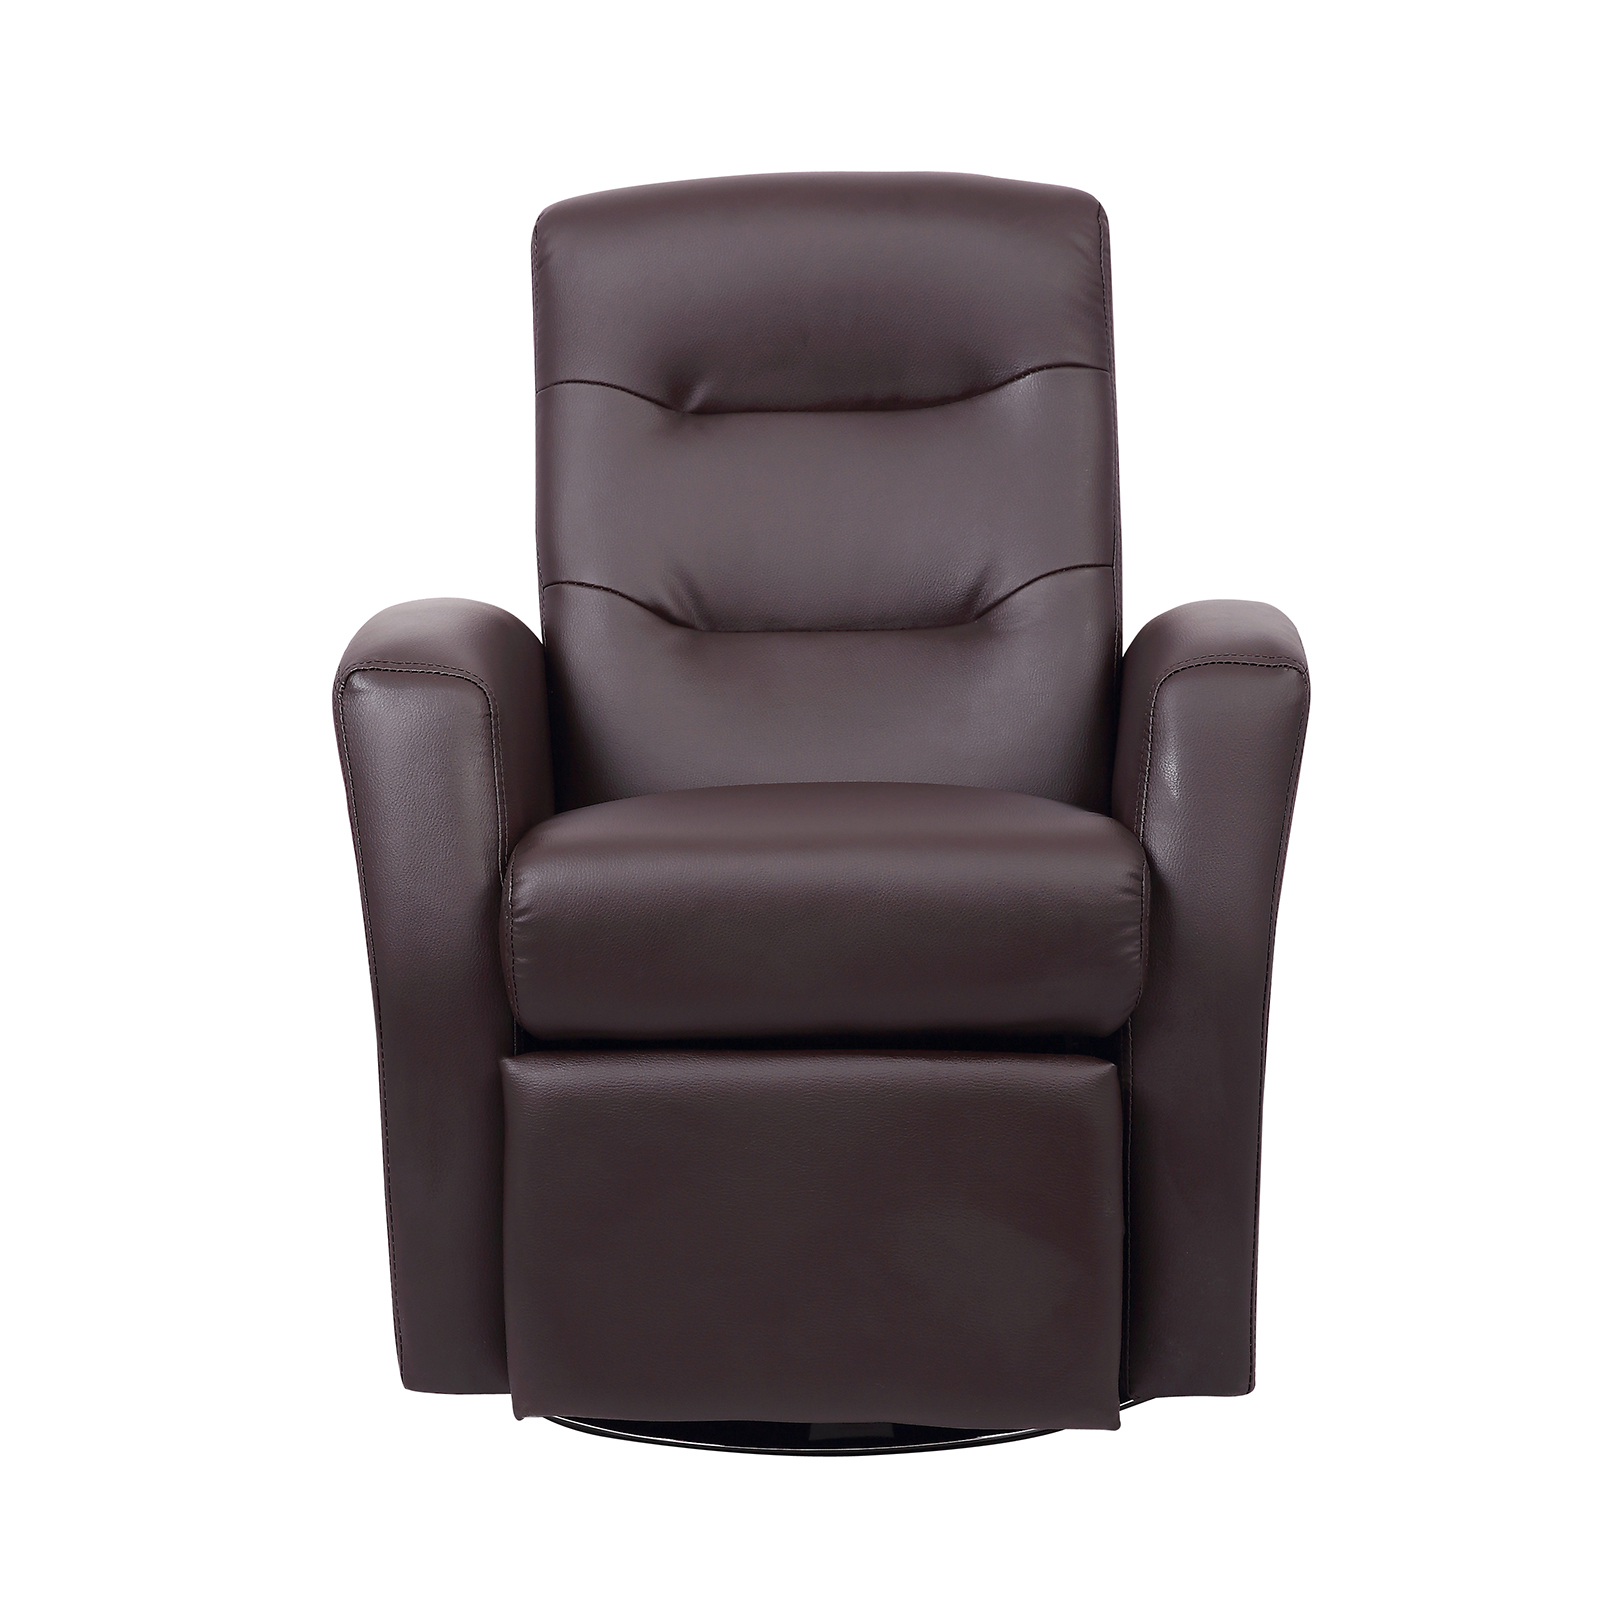 Kids Reclining Chair Kids Reclining Swivel Chair Living Room Furniture Padded